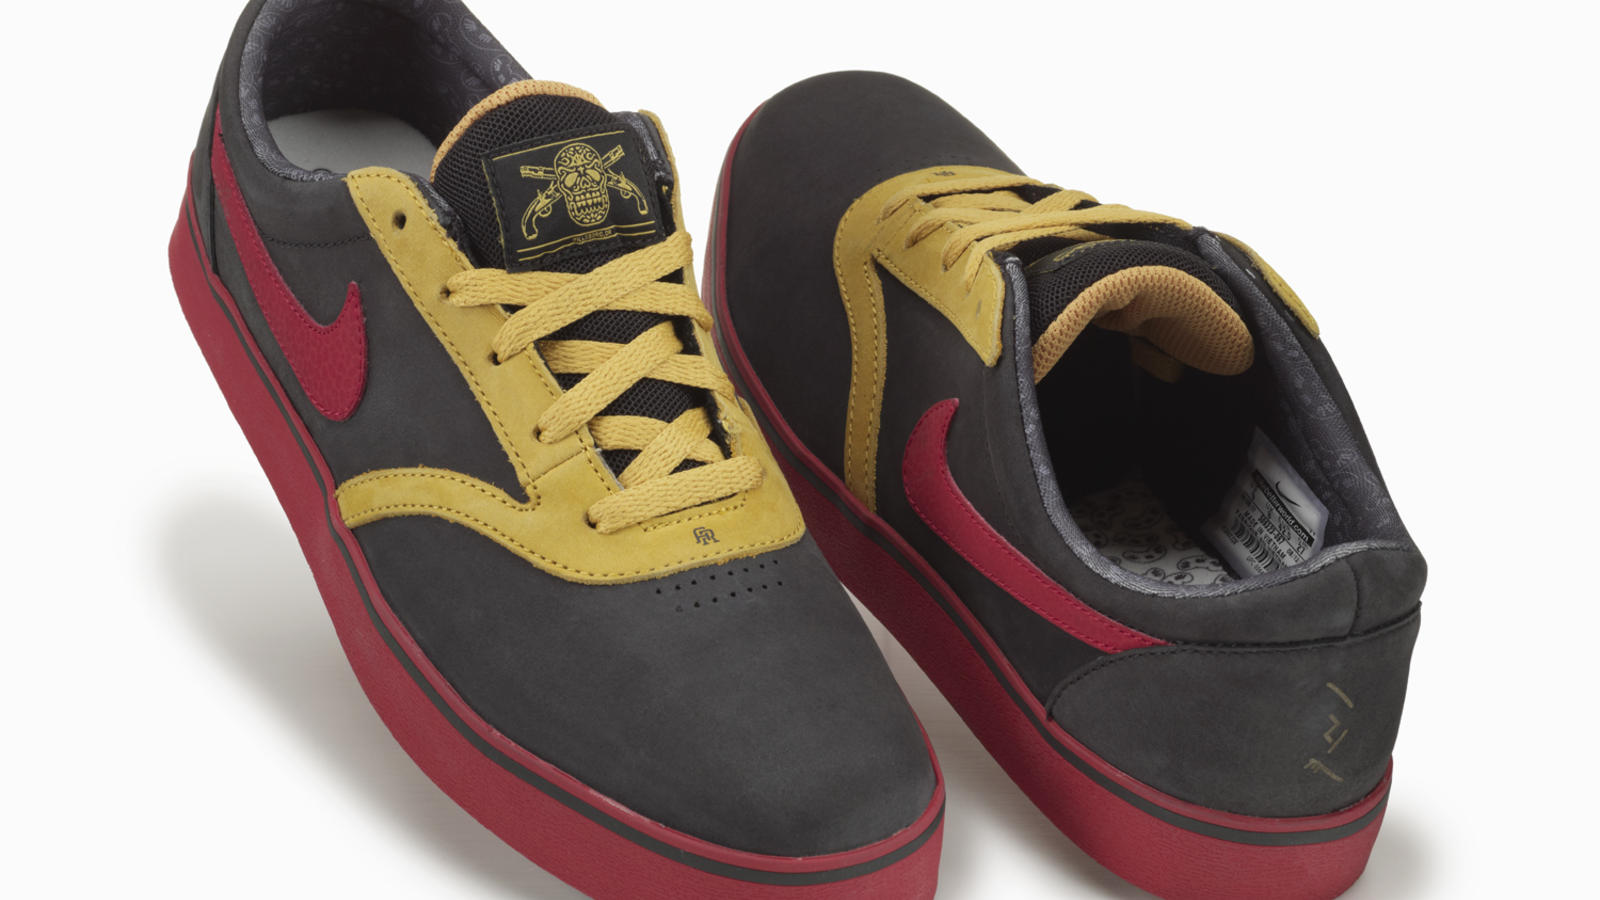 Anthony Roletto, 2011 Vulc-Rod: Red pebbled leather right lateral eyestay, yellow suede on left medial eyestay, pirate tongue top label on left shoe, kidney drawing on left collar lining, fighting cancer original artwork on left tongue lining,